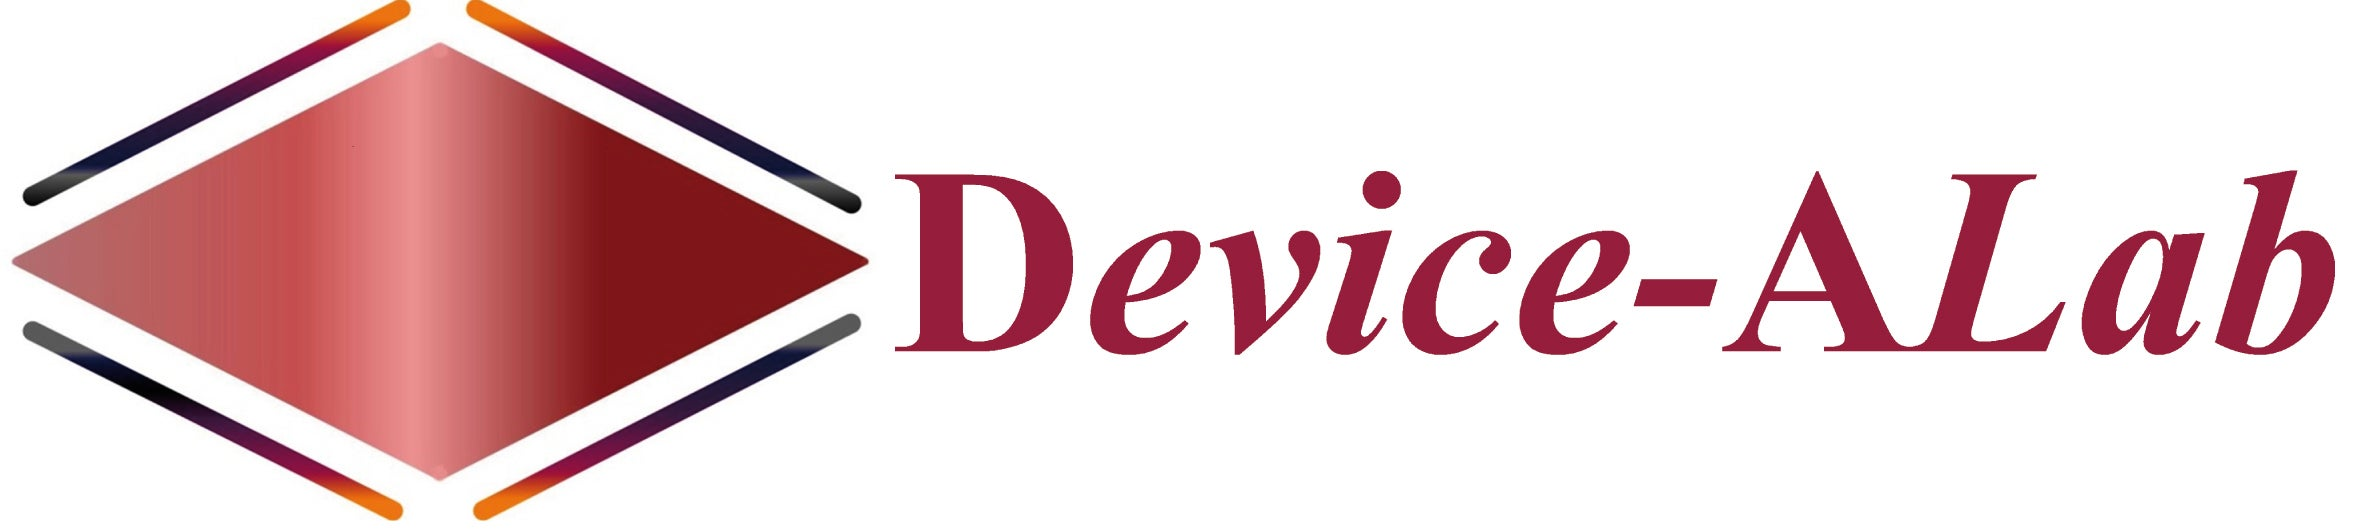 Device-Alab_high resolution logo